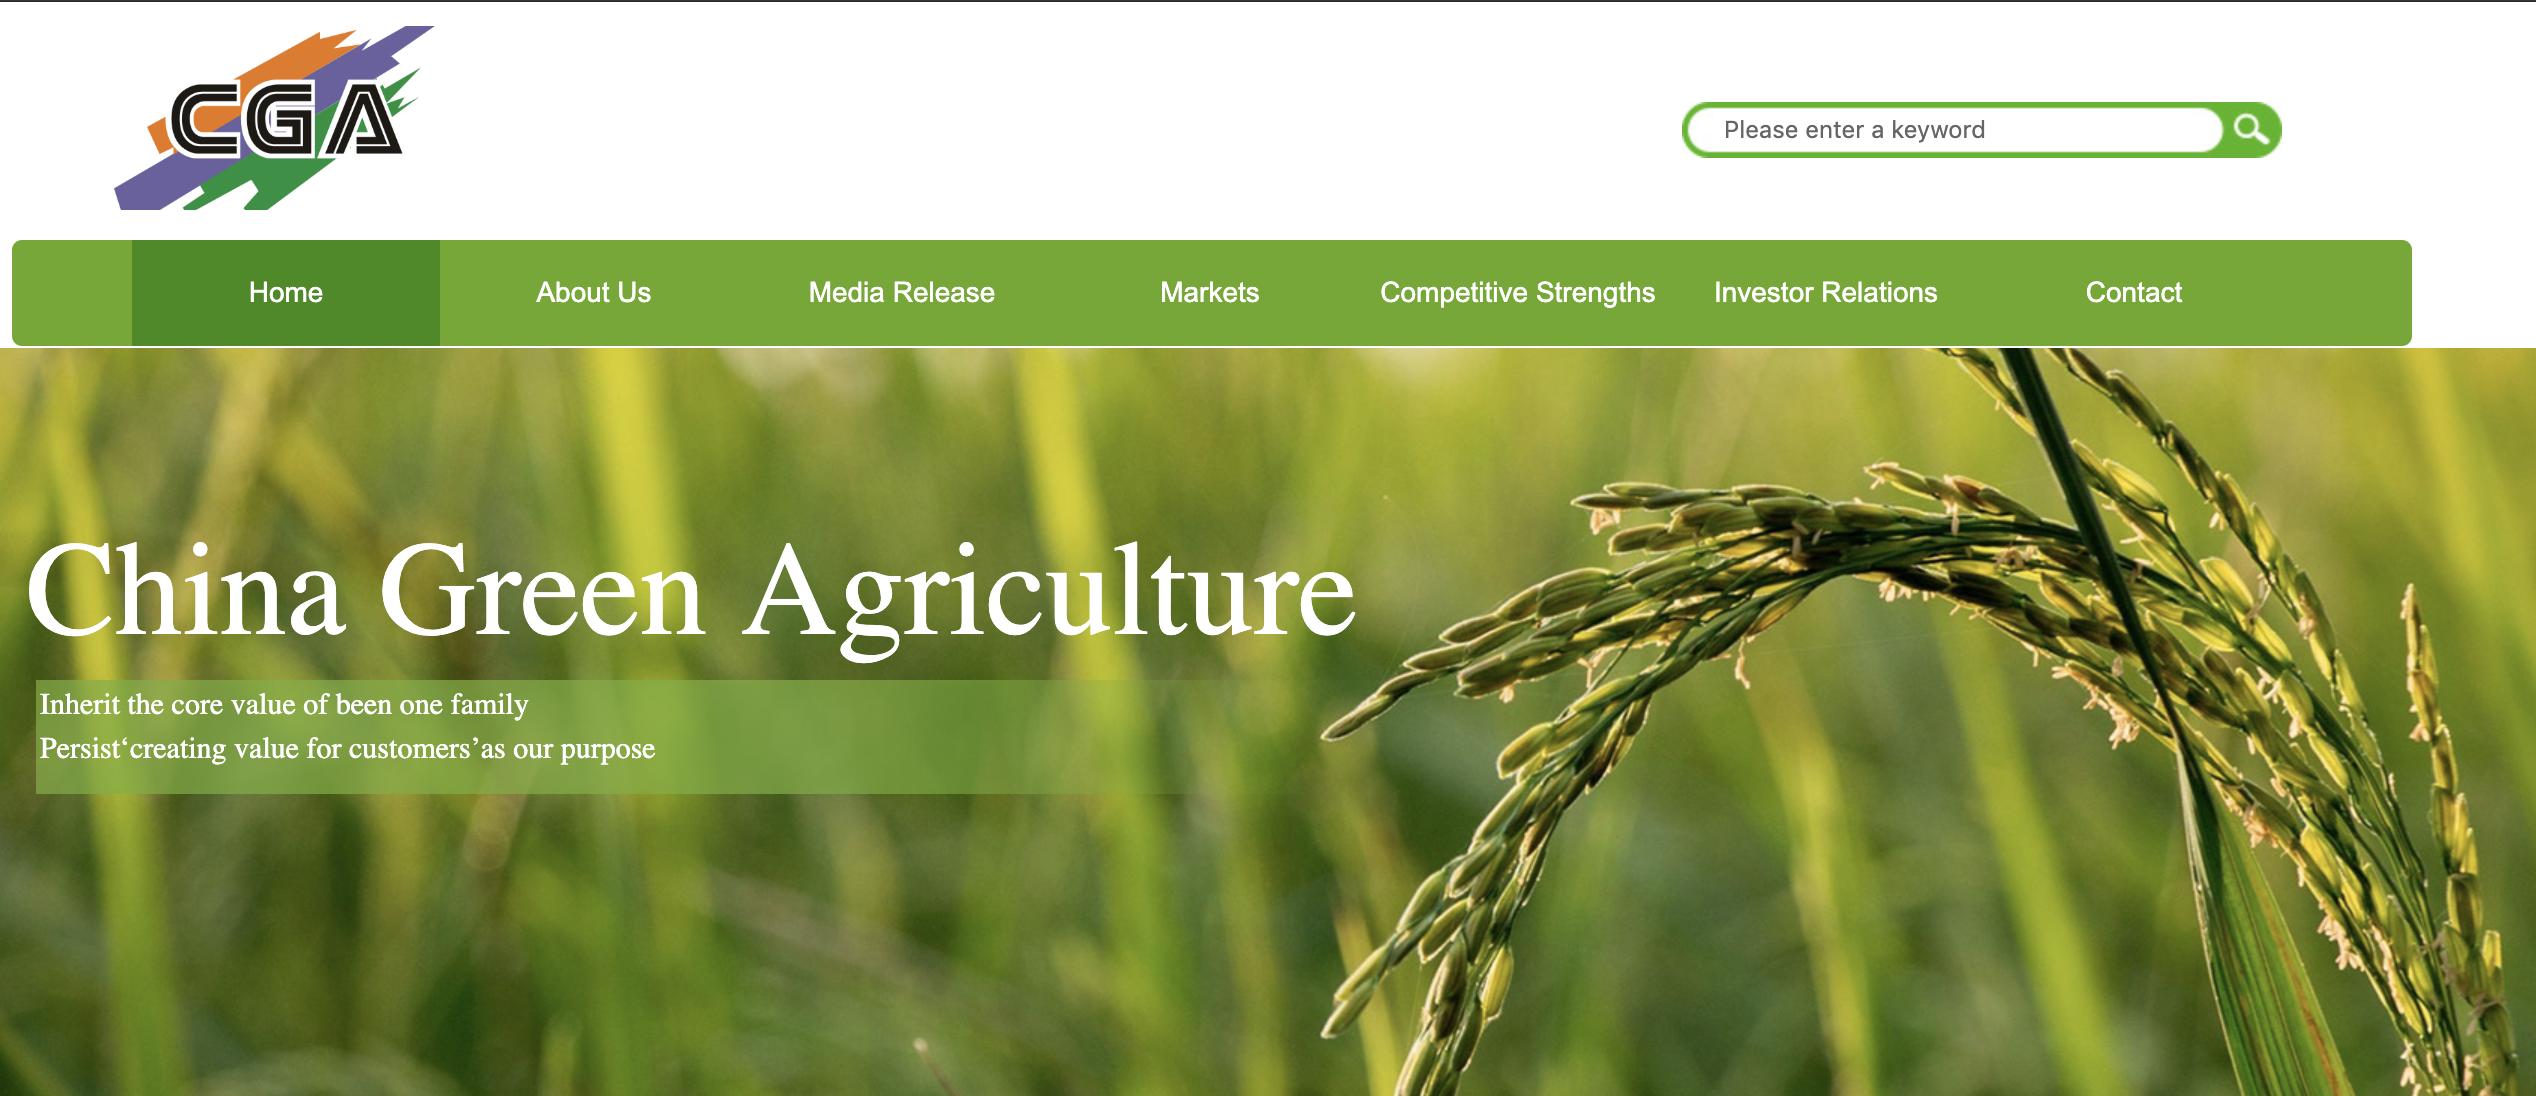 China Green Agriculture Announces Reverse Stock Split